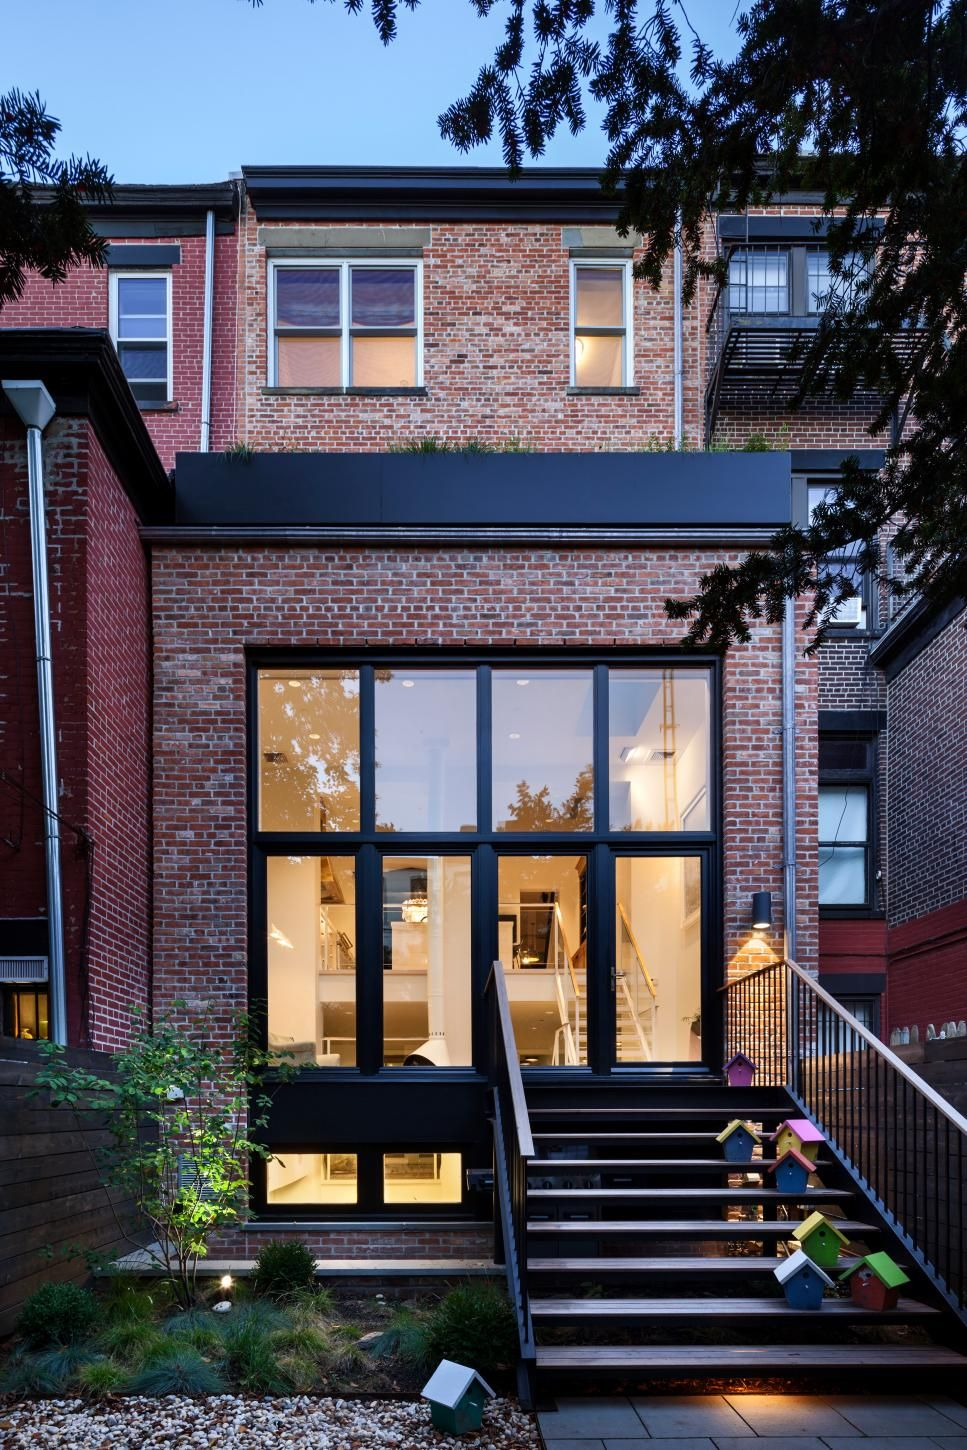 A Full Gut Renovation Of Four Story Romanesque Revival Row House Was Carried Out By CWB Architects Located In Park Slope Brooklyn New York